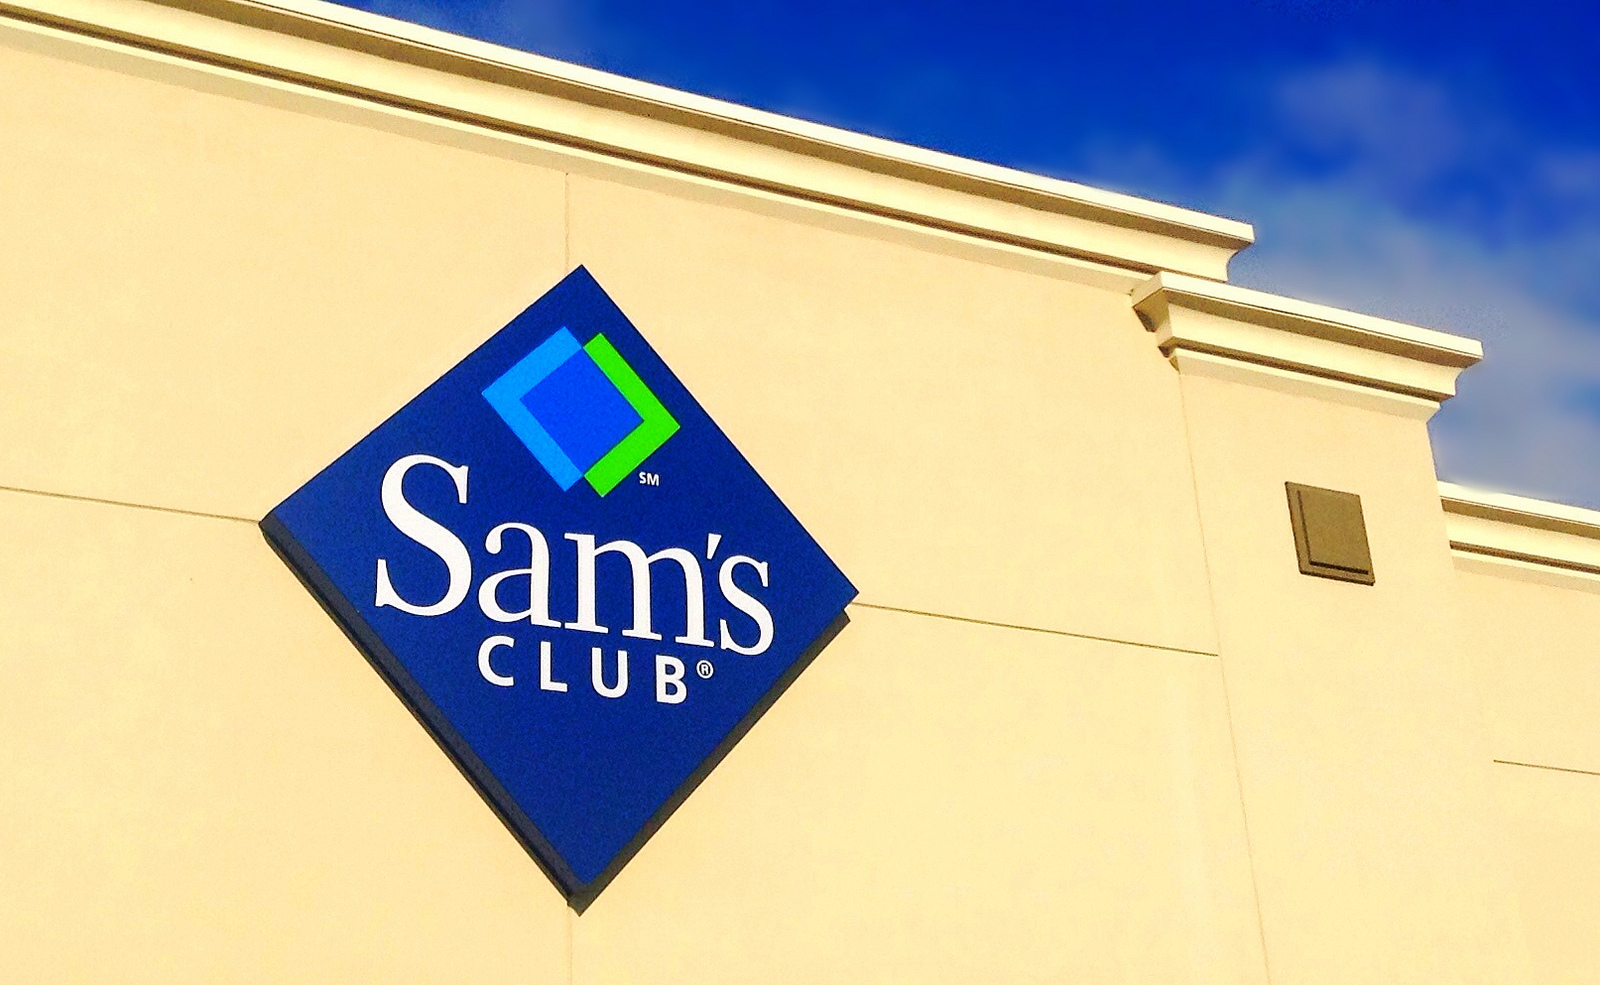 Sam's Club Revamping Its Grocery Offerings To Better Compete With Costco, Other Retailers